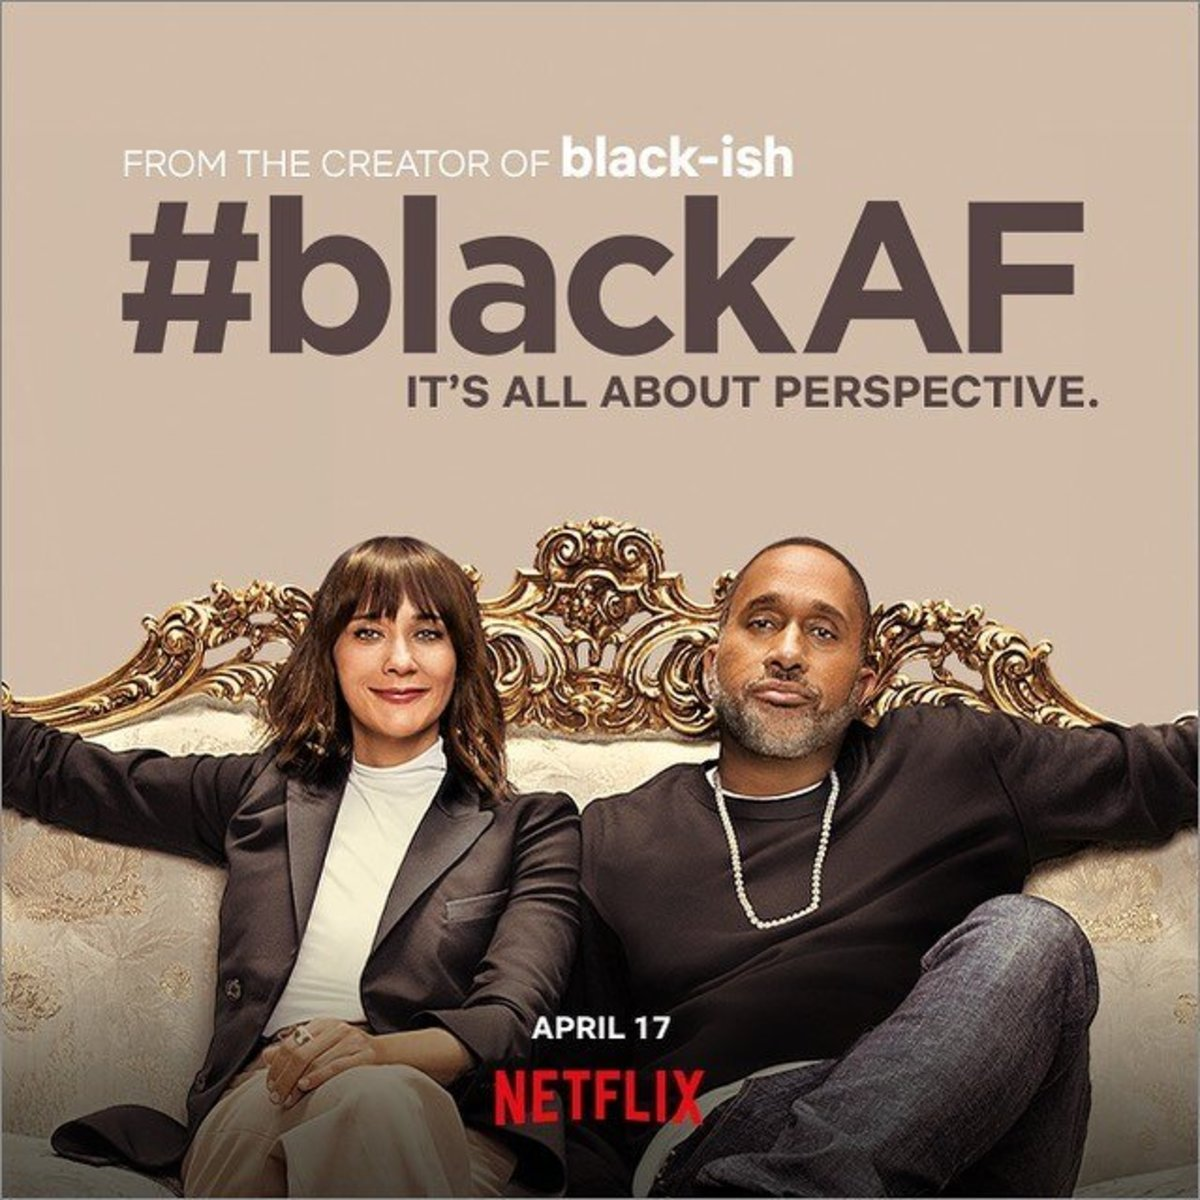 why-the-netflix-show-blackaf-is-not-blackaf